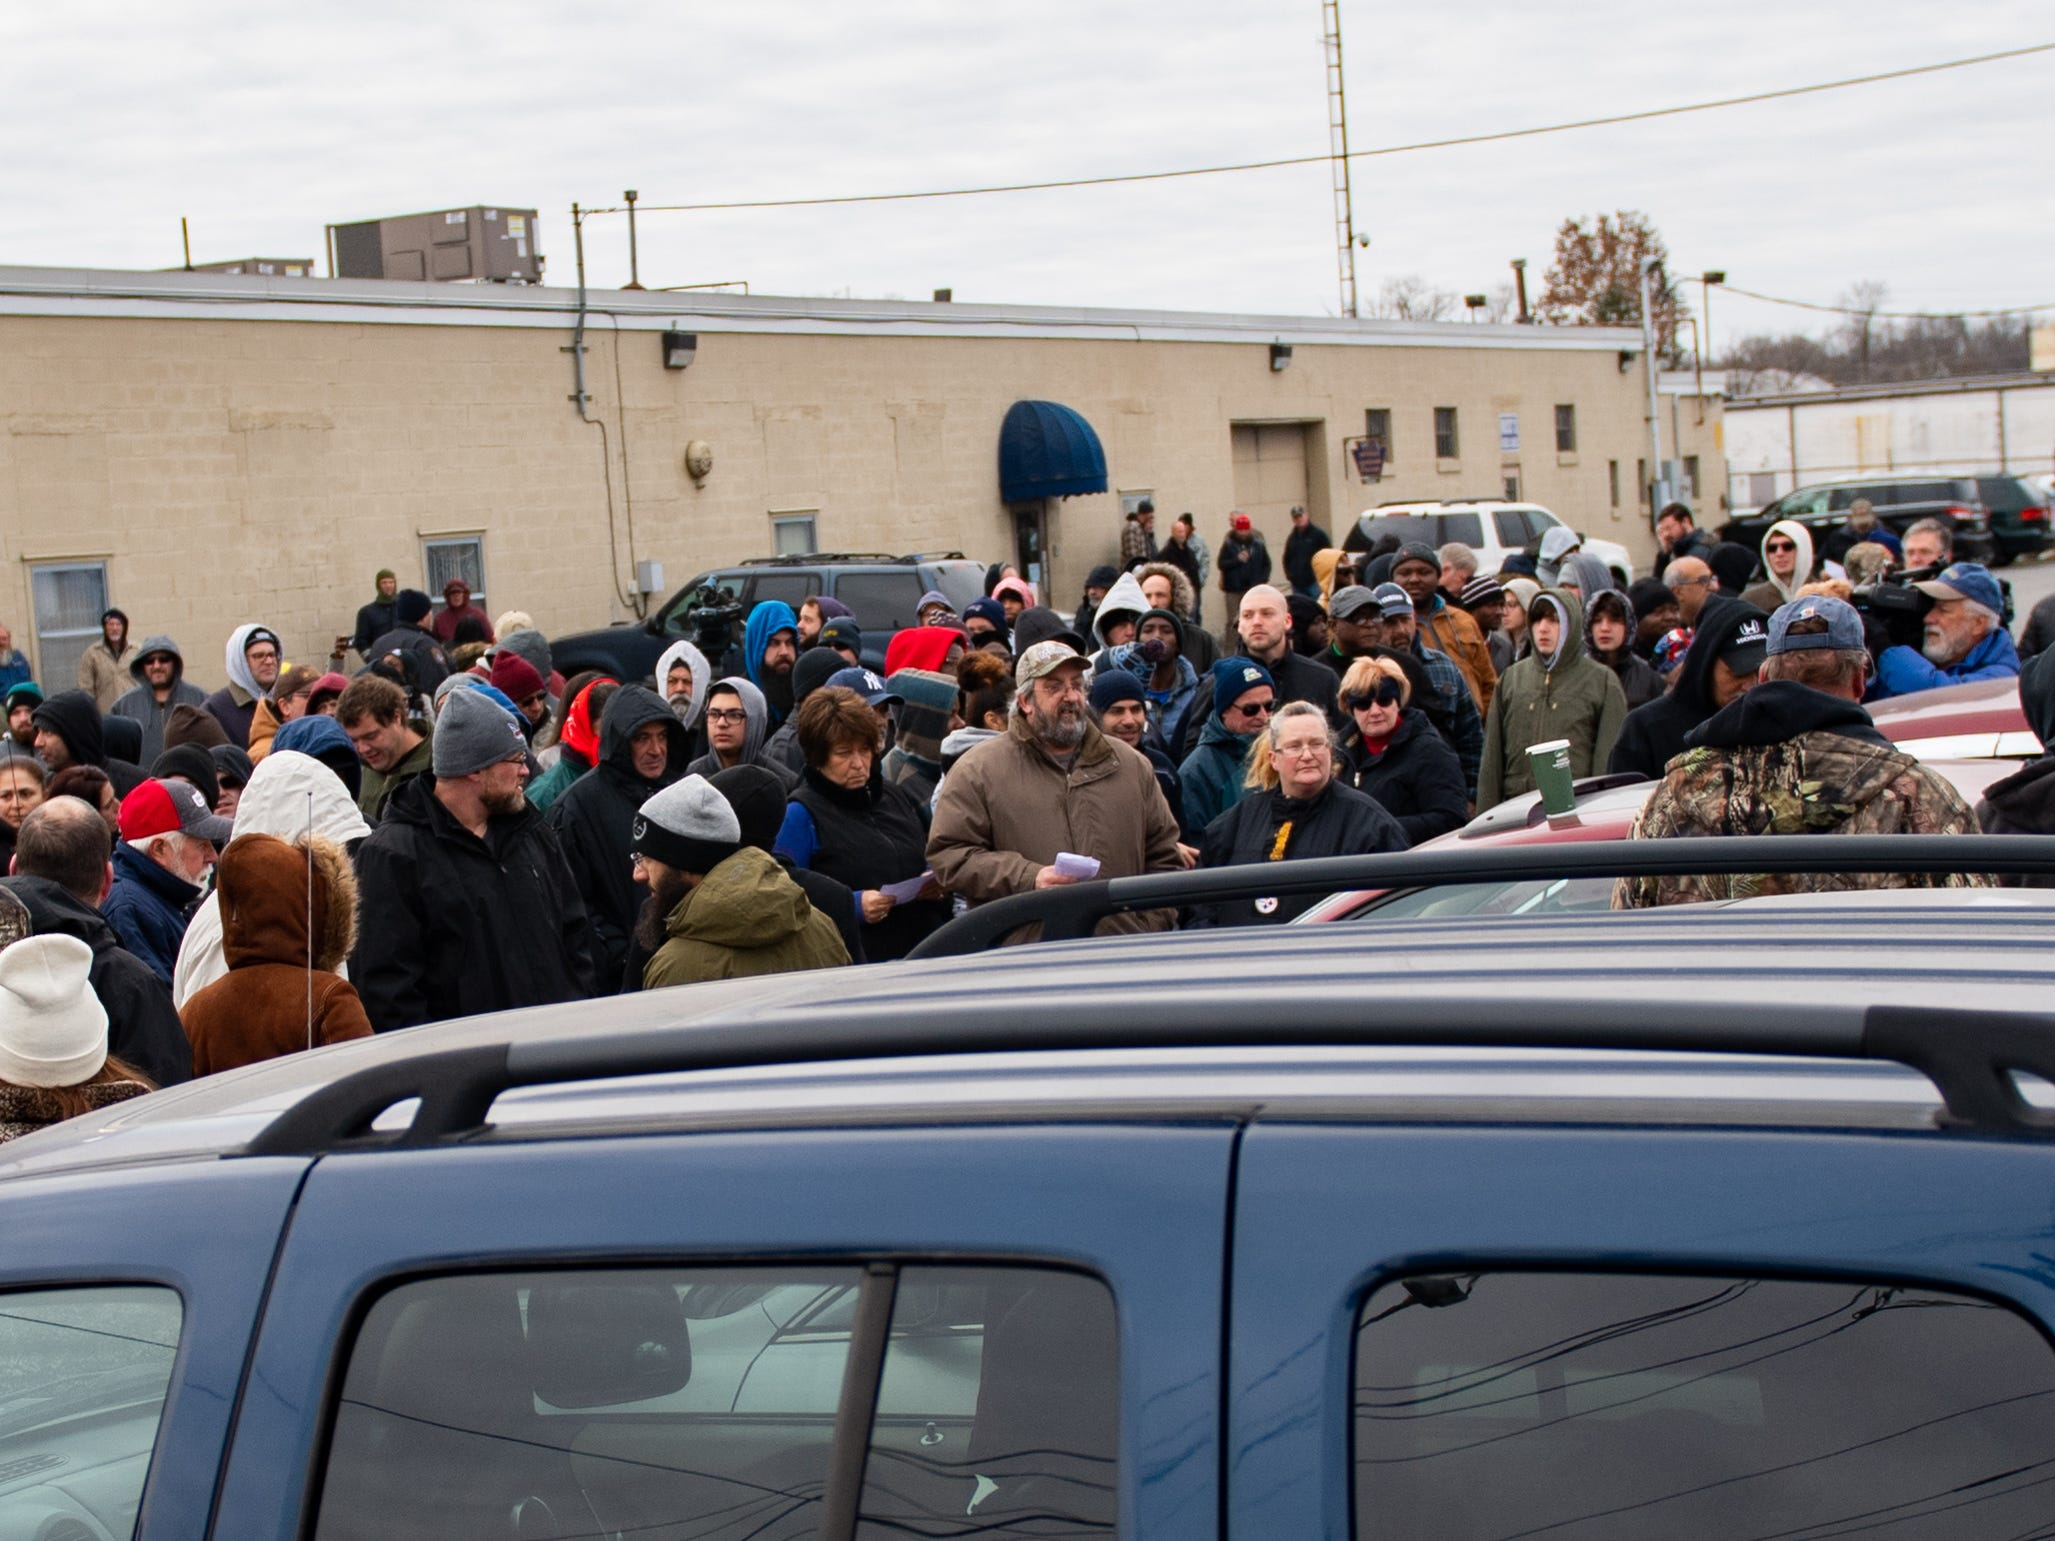 Hundreds of Yorkers gathered around to bid on their favorite cars in the lot, November 23, 2018.